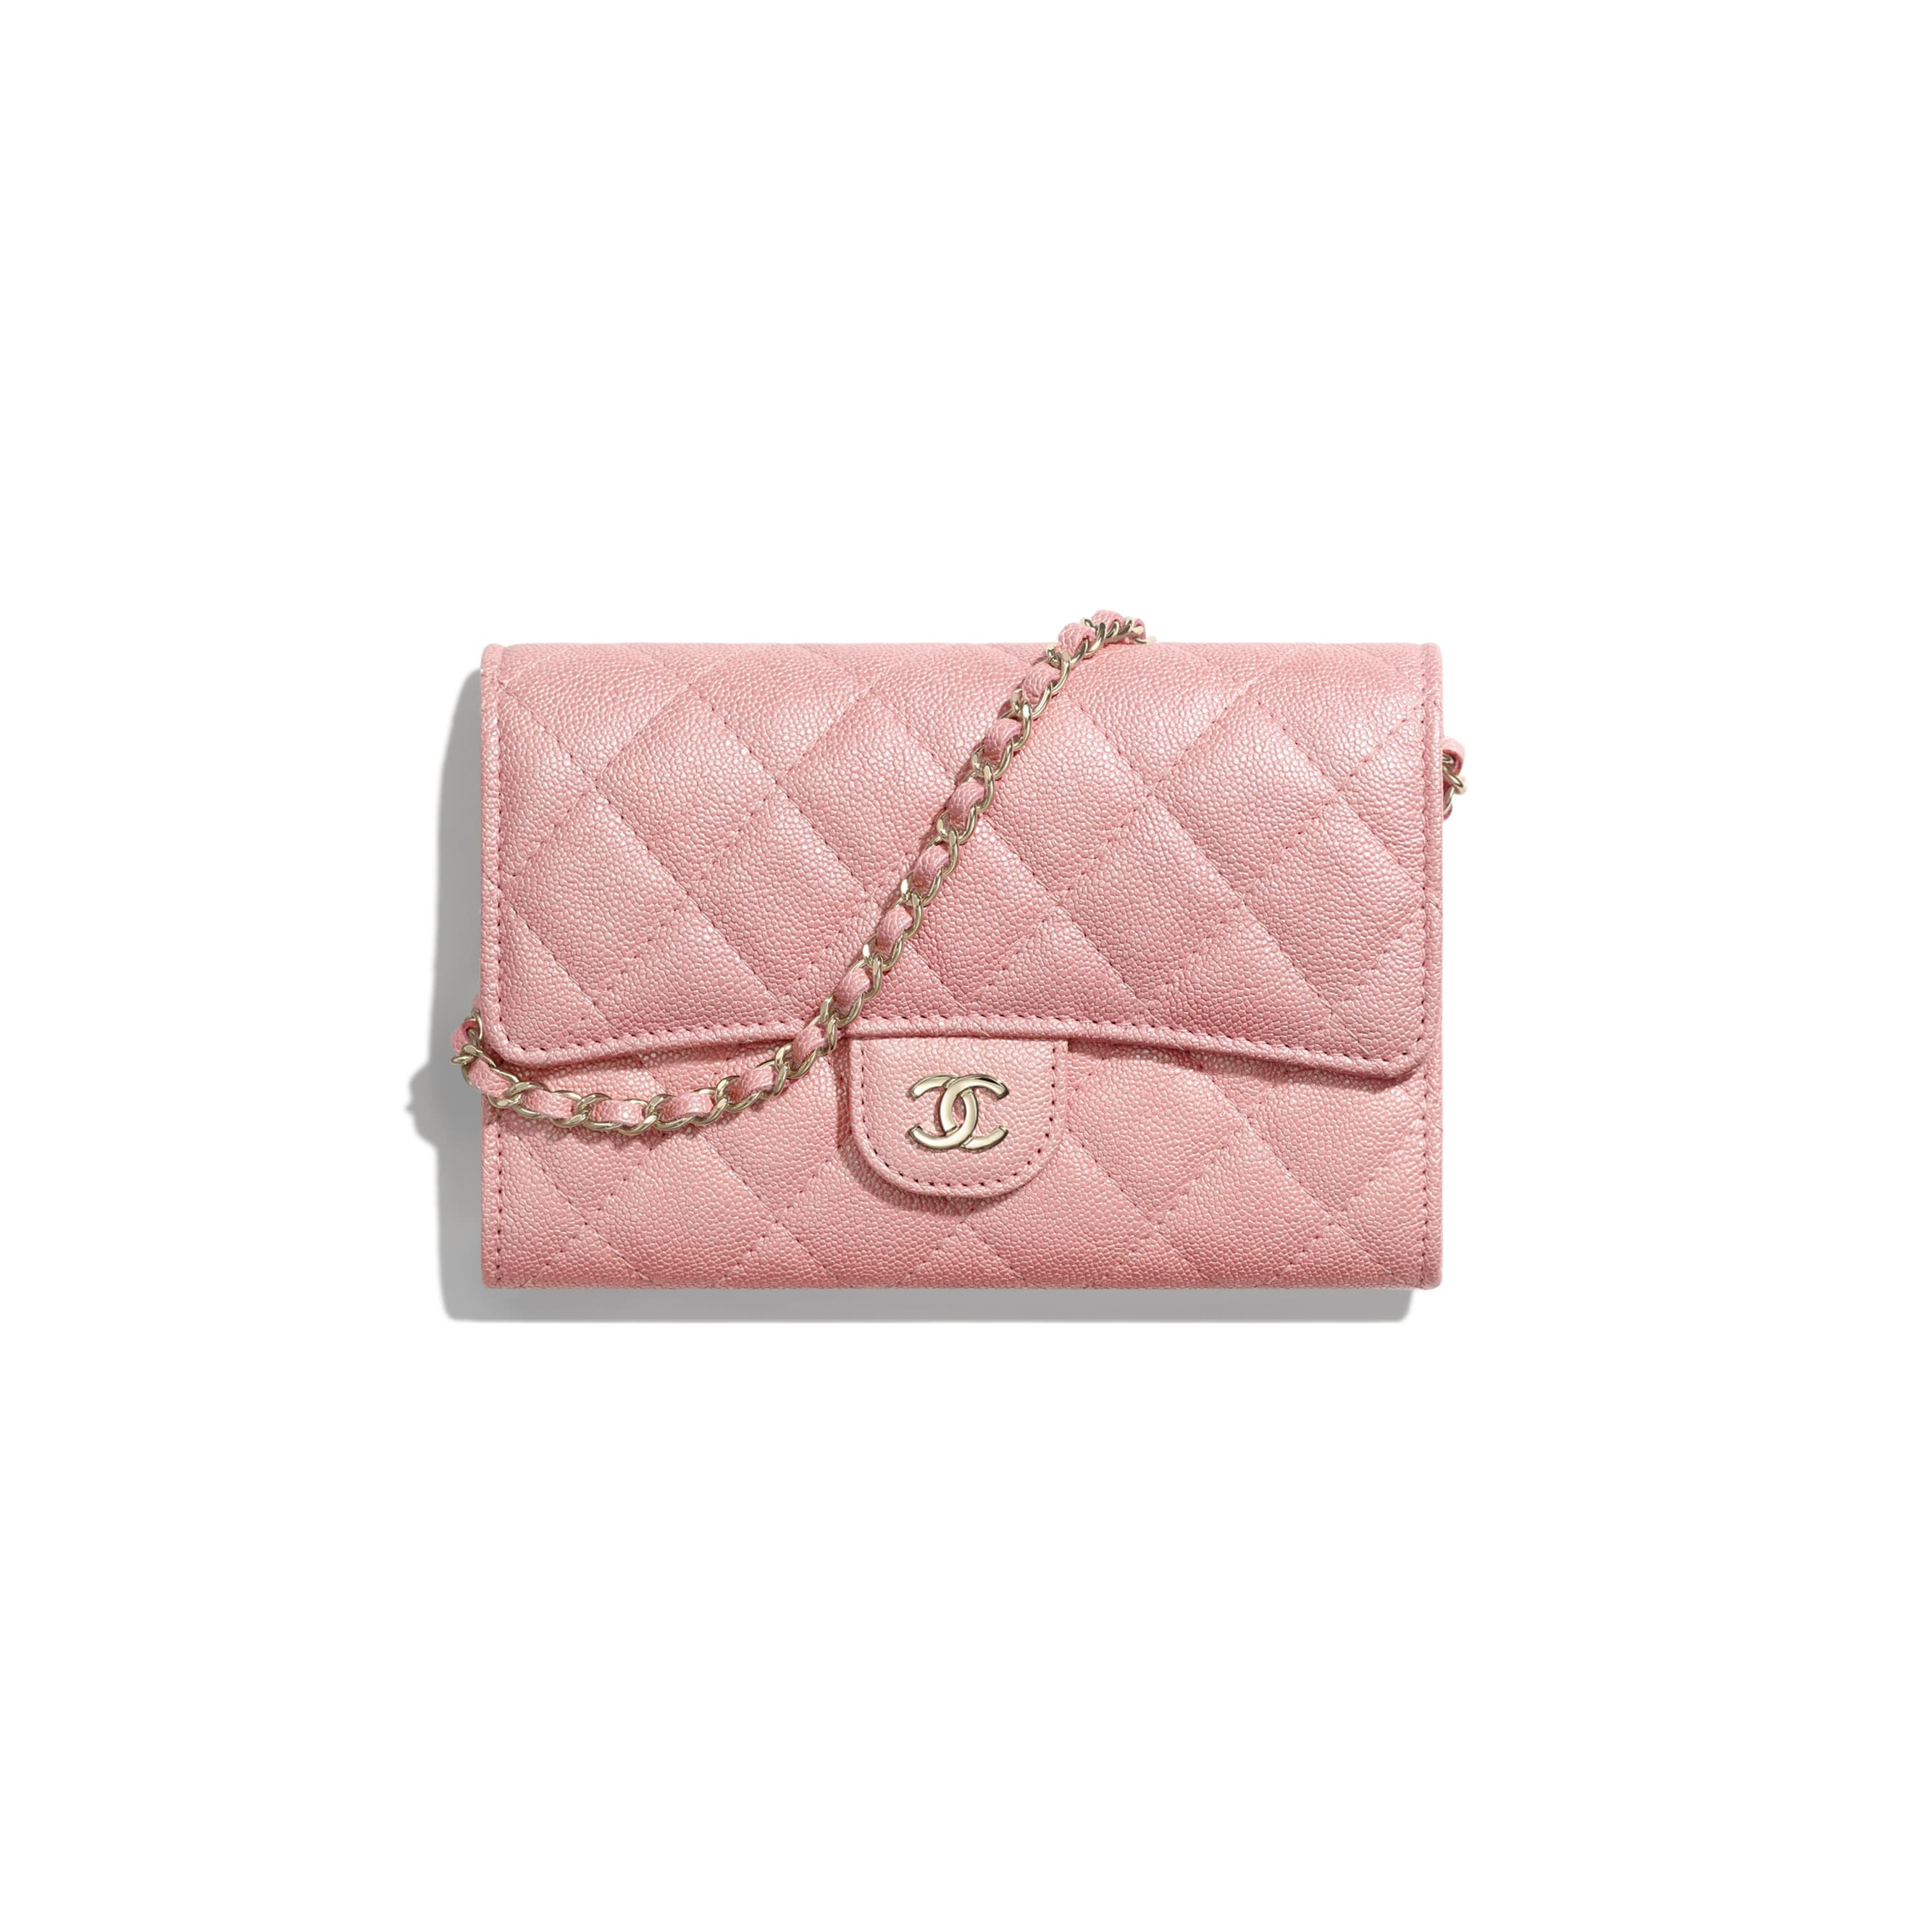 Classic Clutch with Chain - Pink - Iridescent Grained Calfskin & Gold-Tone Metal - Default view - see standard sized version